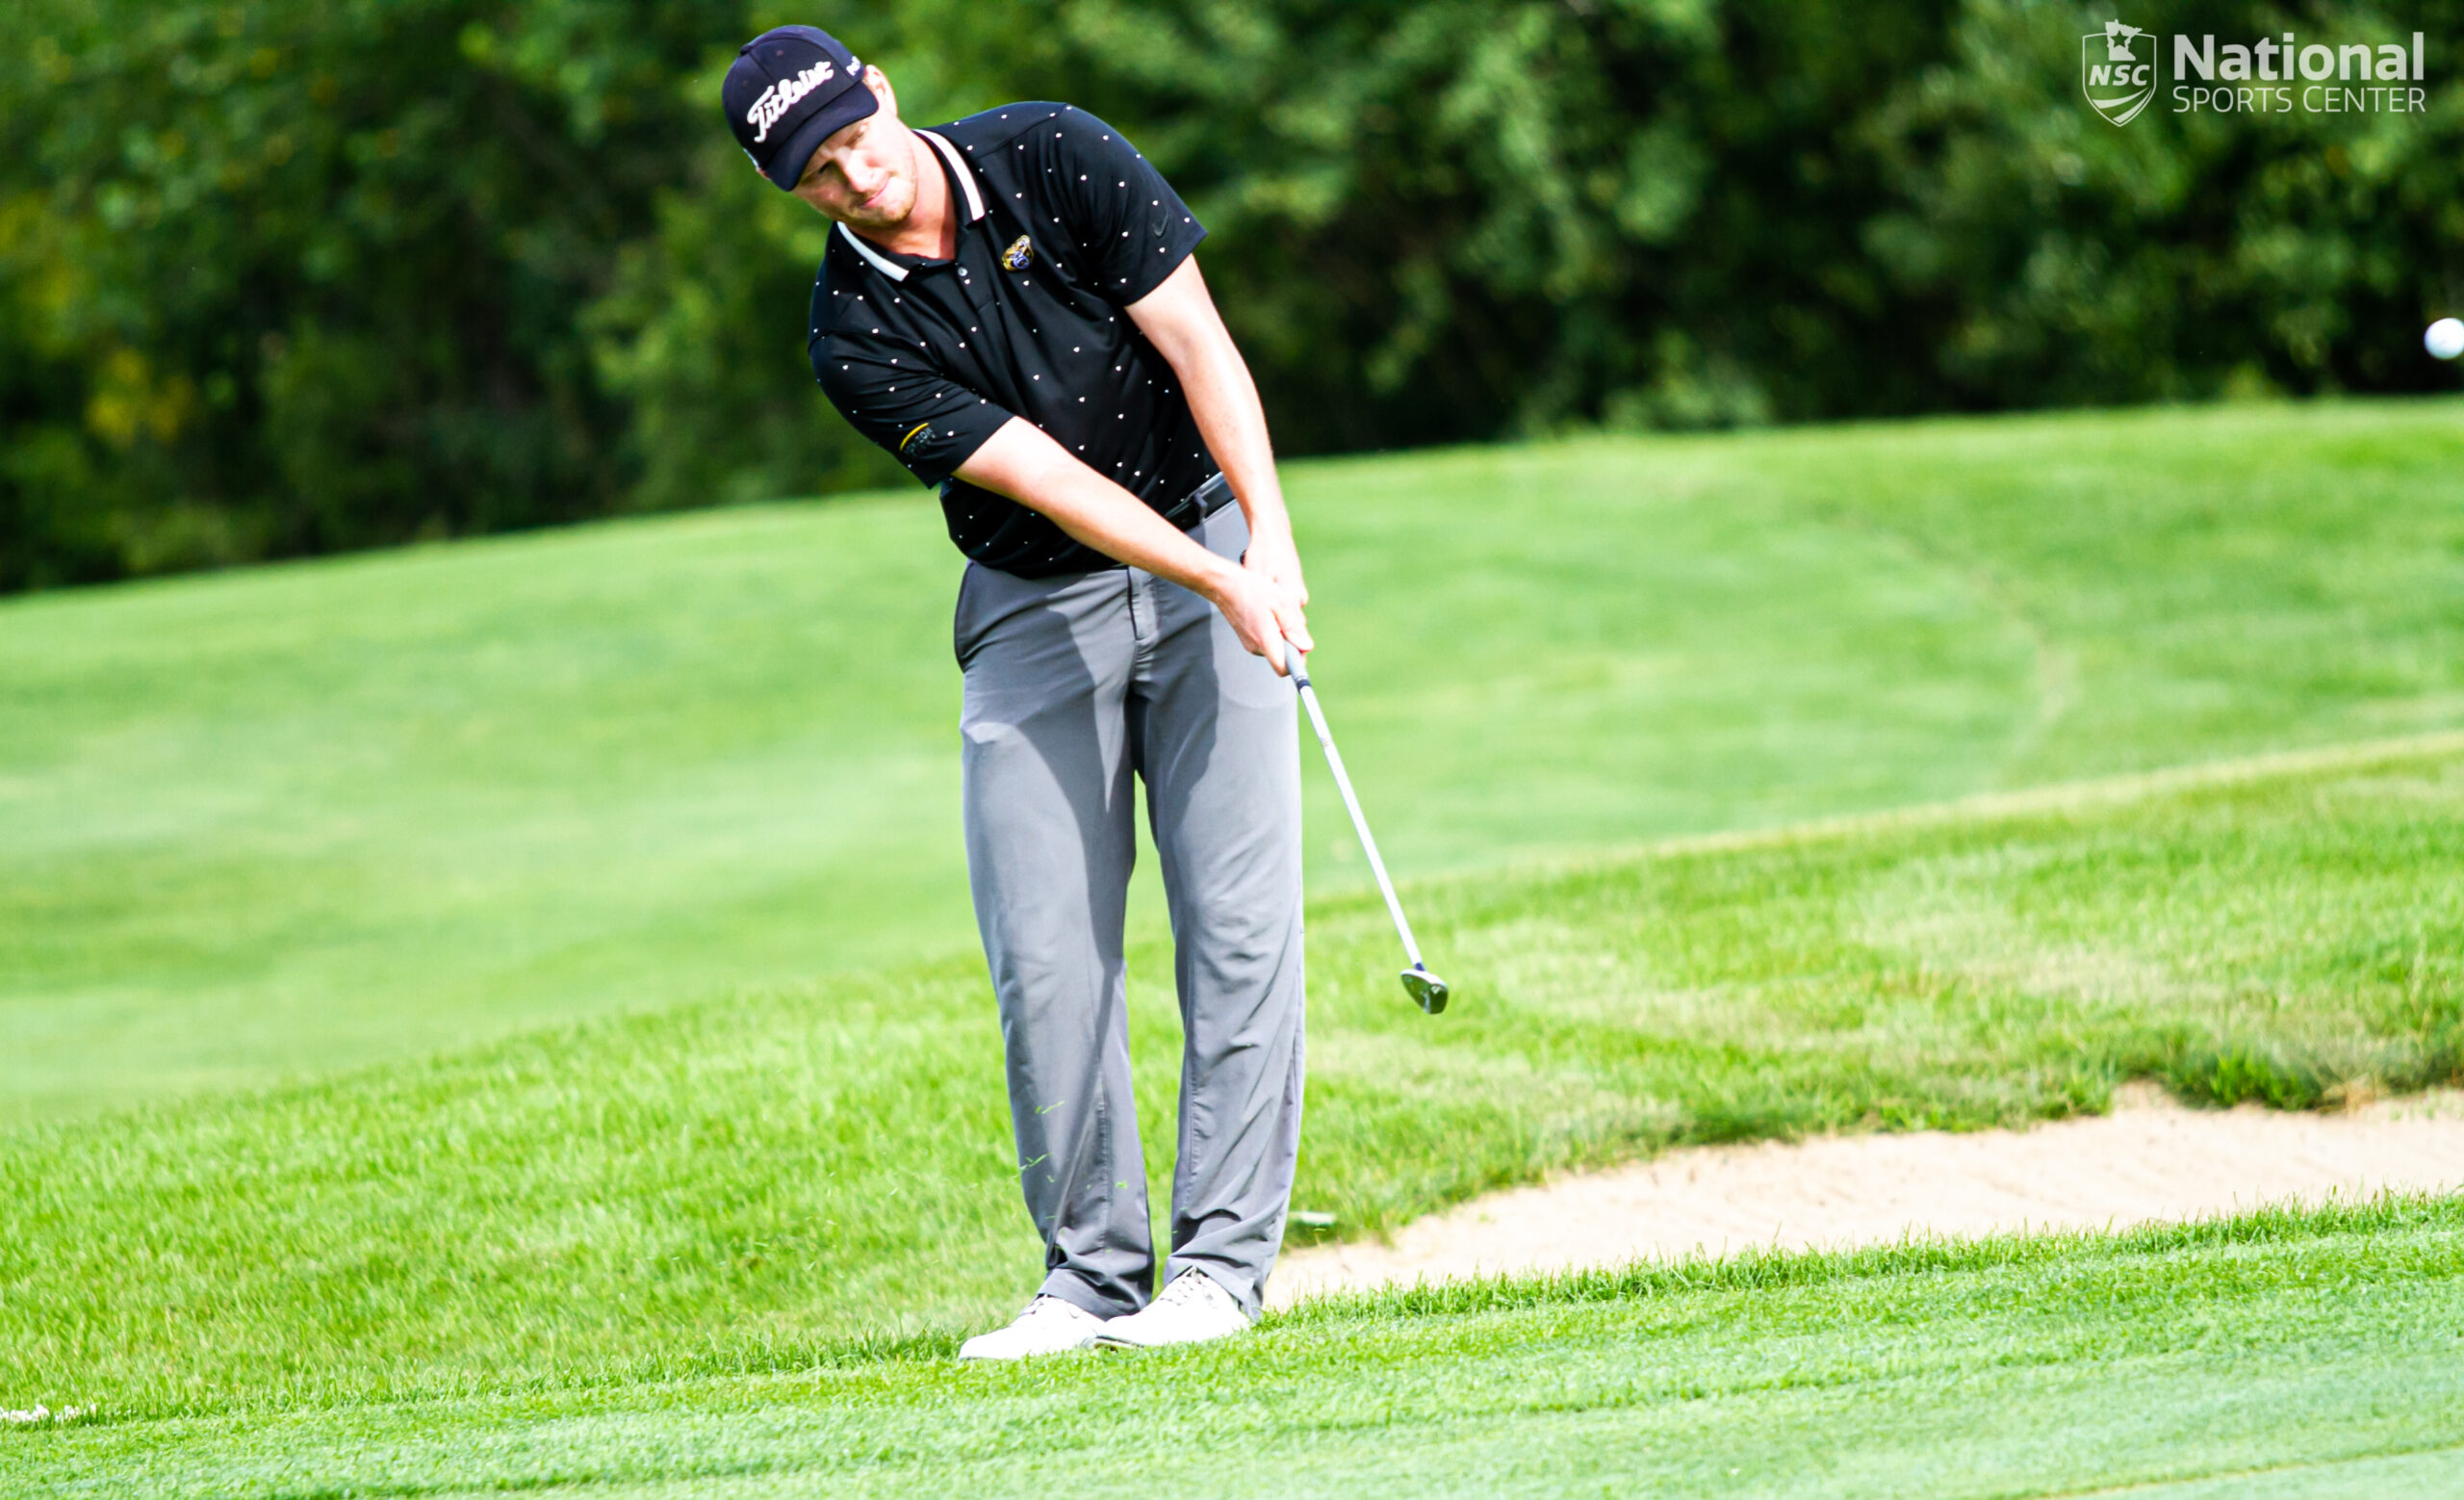 Jake Kneen from White Lake, Michigan shot 8-under-par 63 at Victory Links to qualify for the 2020 3M Open.